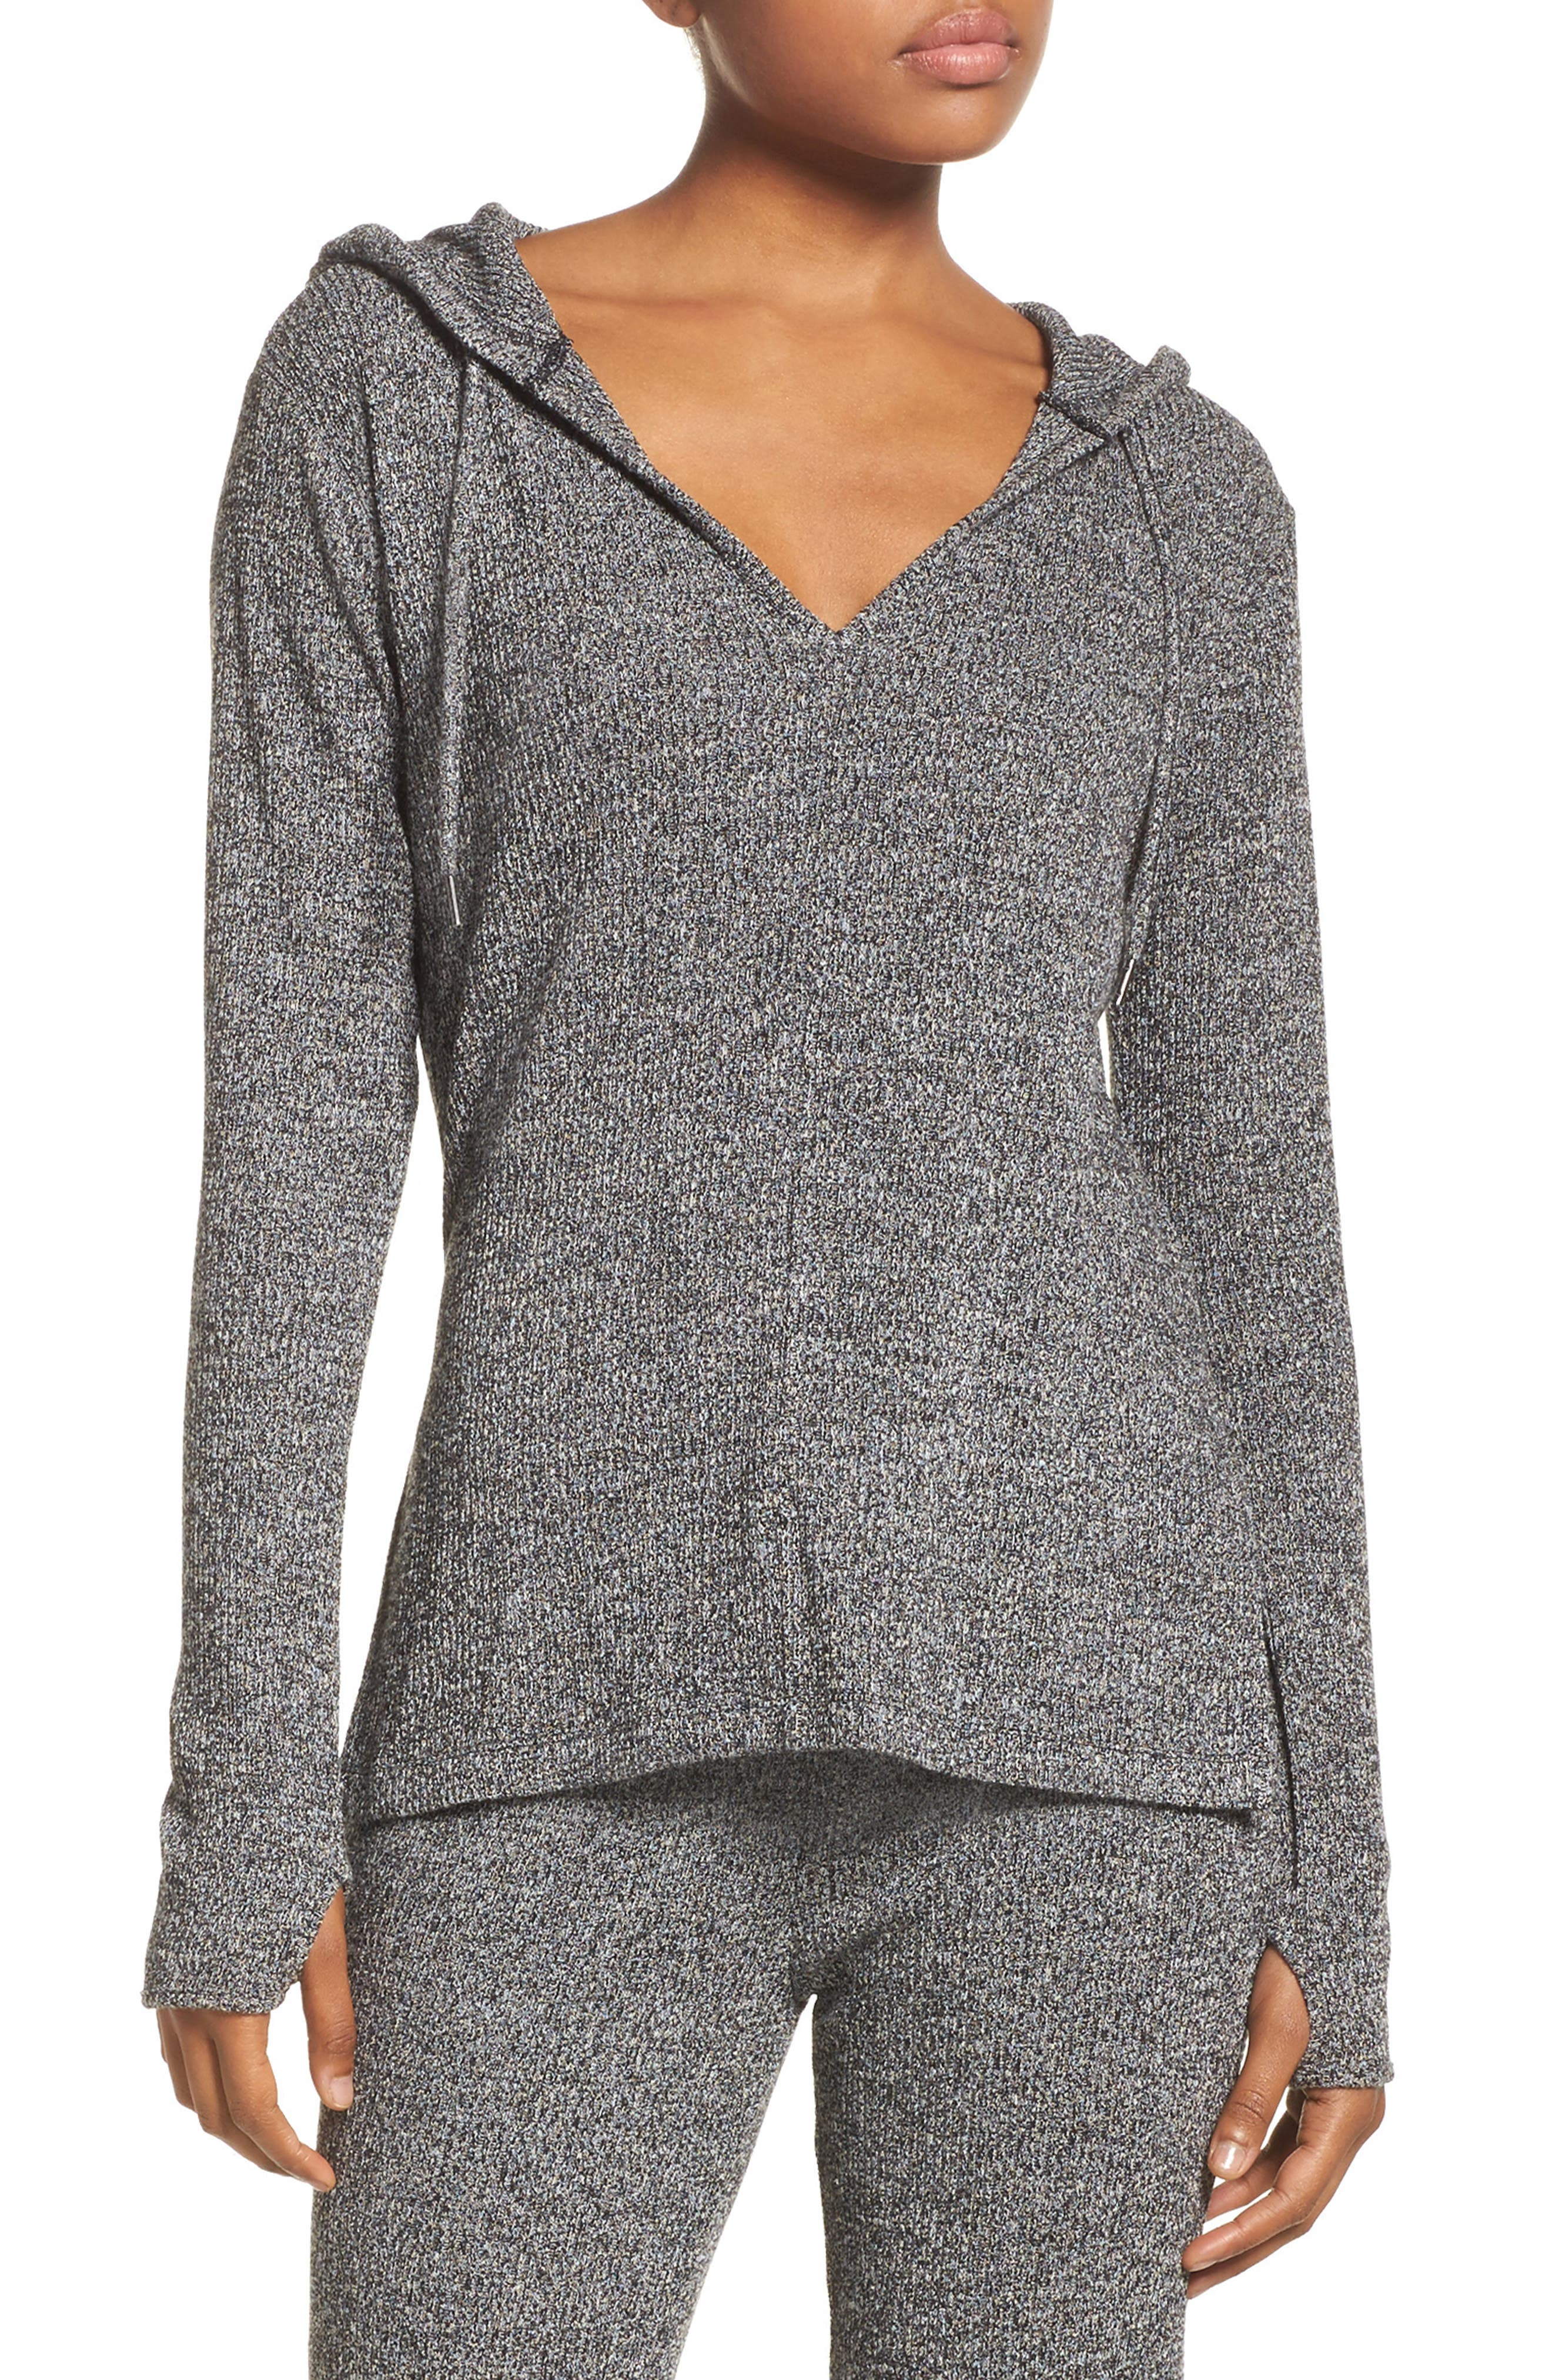 Main Image - Zella Mantra Hooded Pullover Top